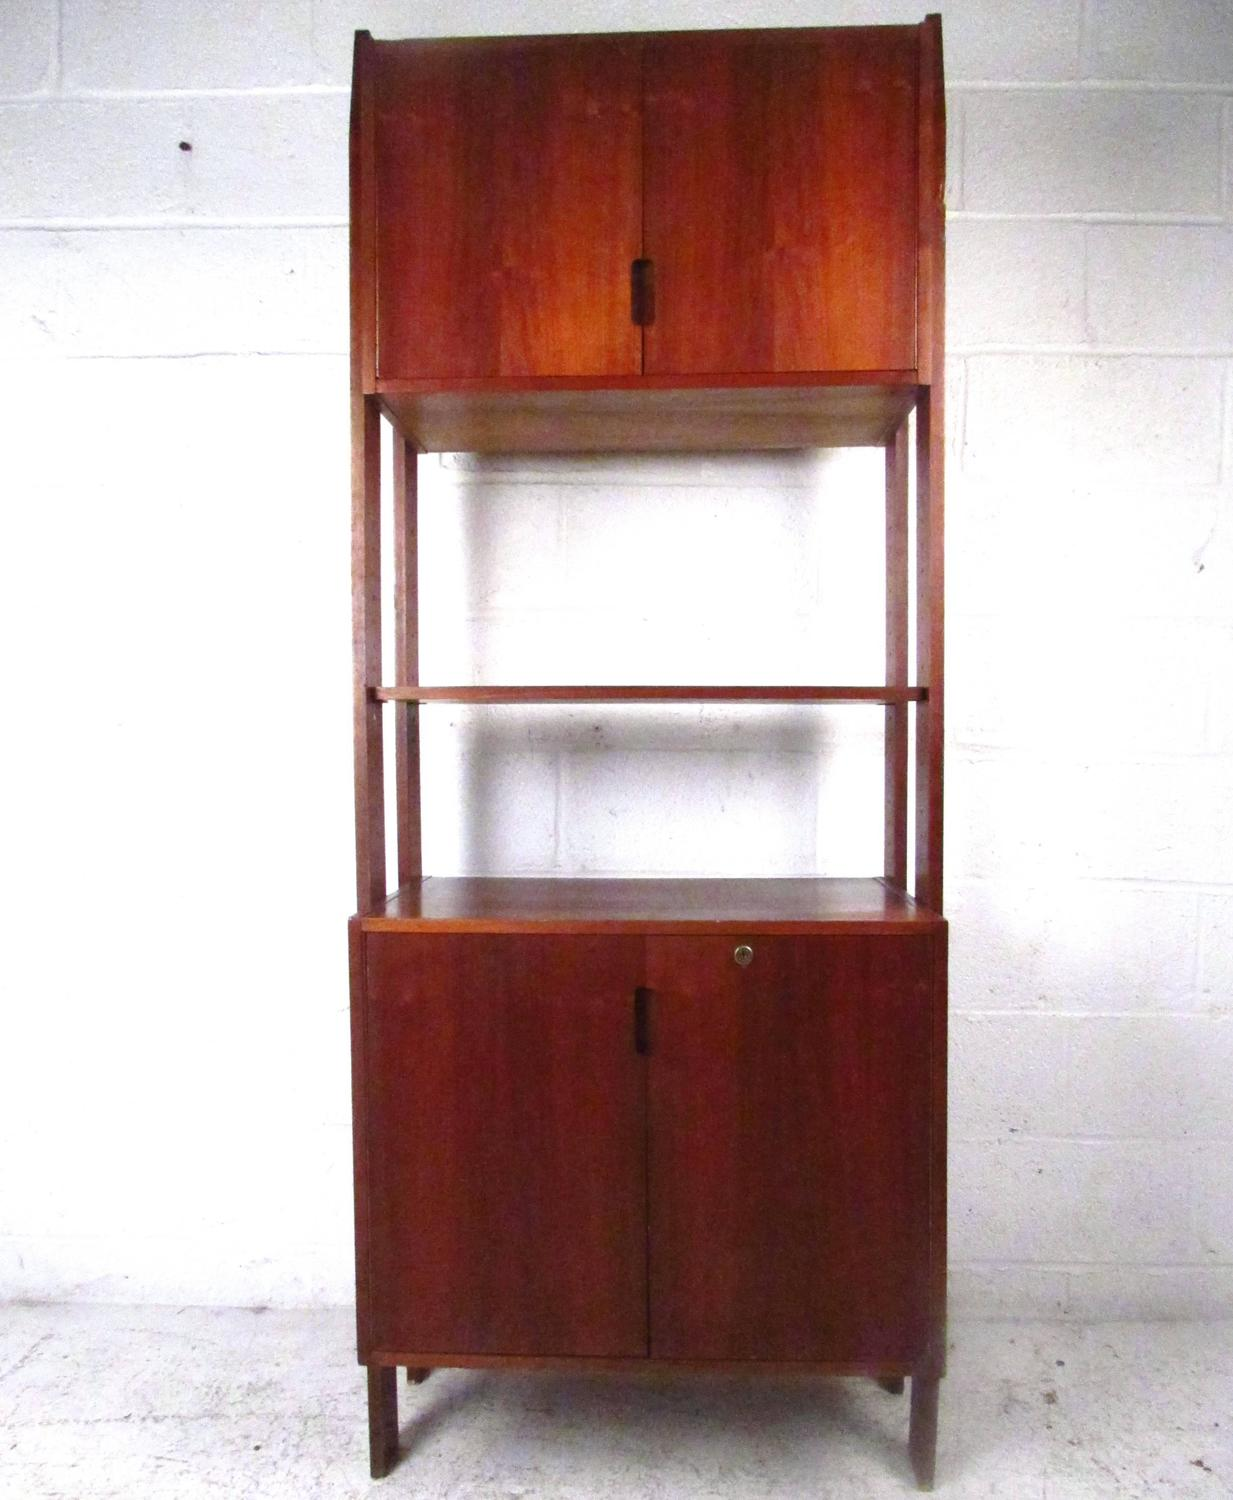 Mid-Century Modern Freestanding Bookshelf with Cabinet For Sale at ...